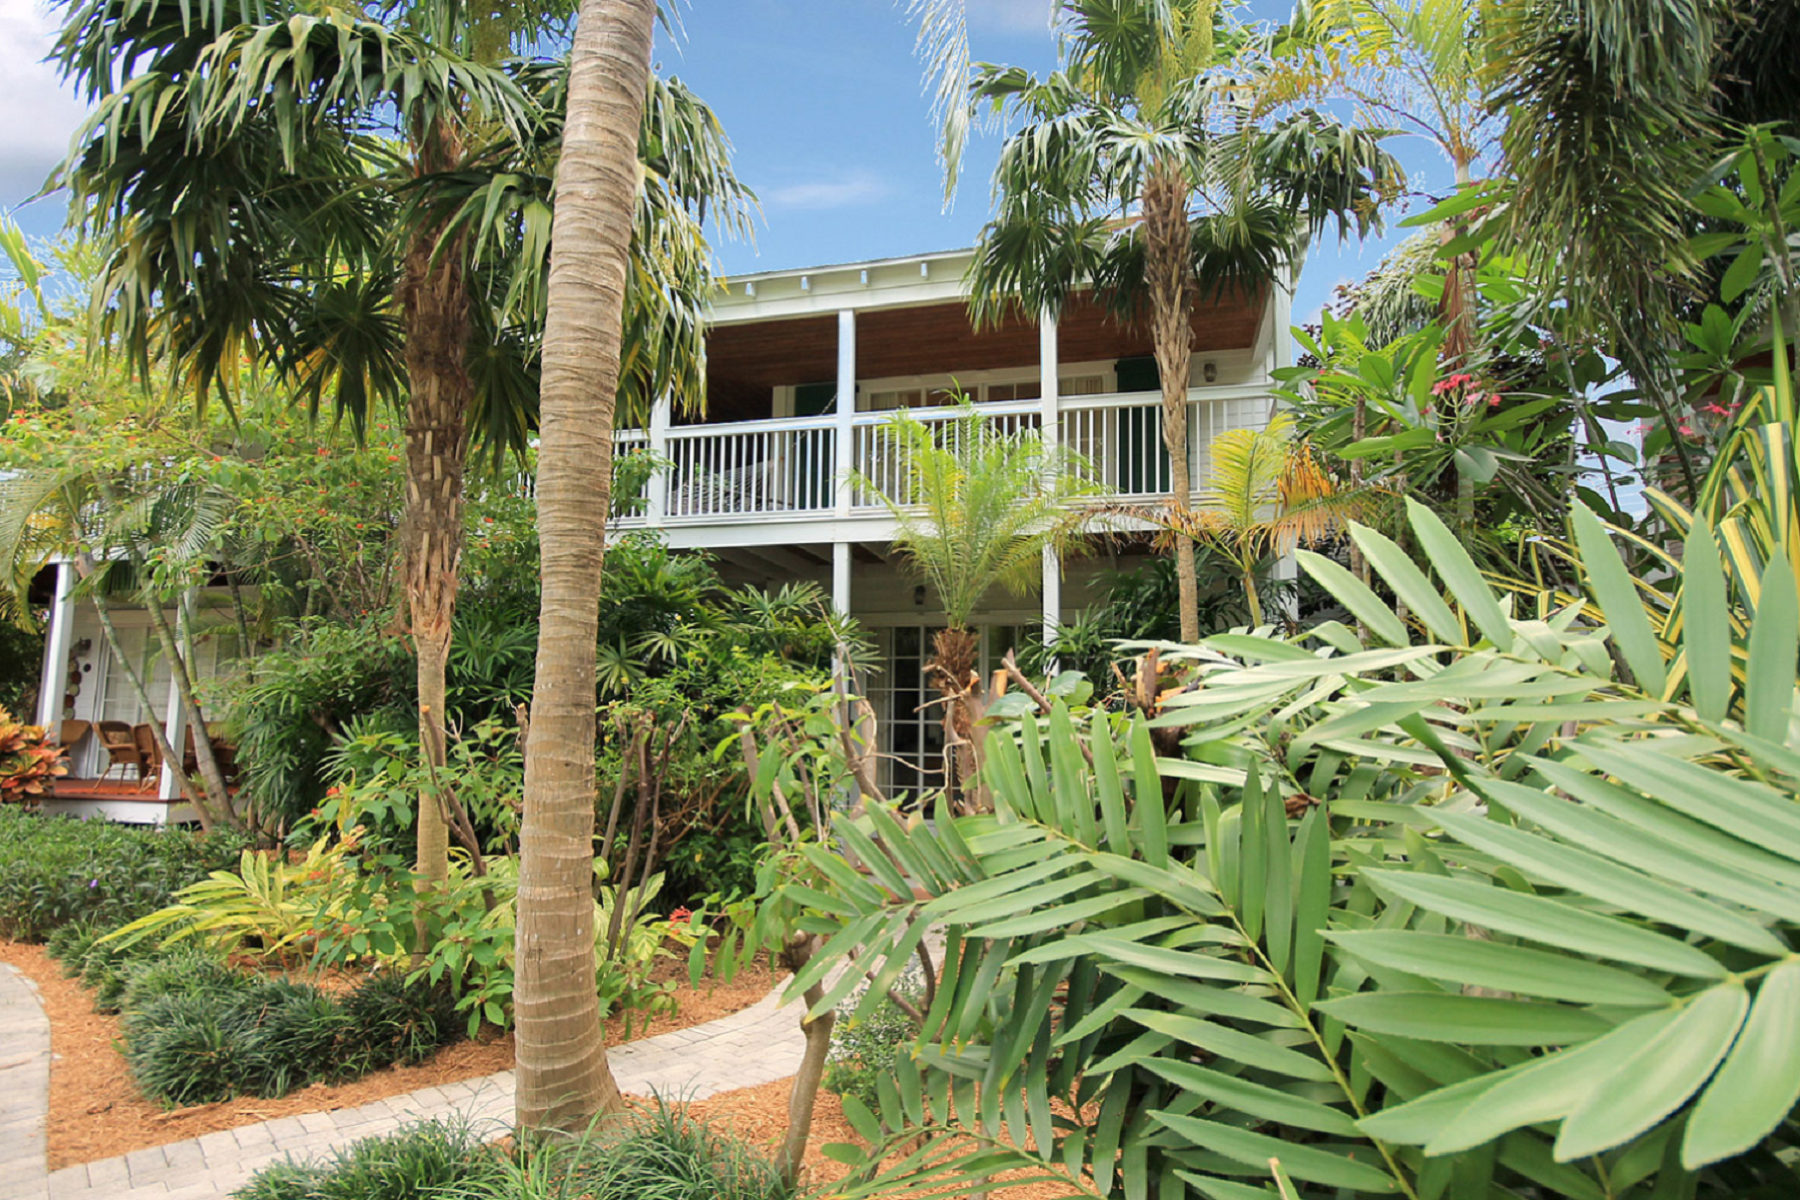 Casa Unifamiliar por un Venta en Open Water Views on a Private Island 70 Sunset Key Drive Key West, Florida 33040 Estados Unidos